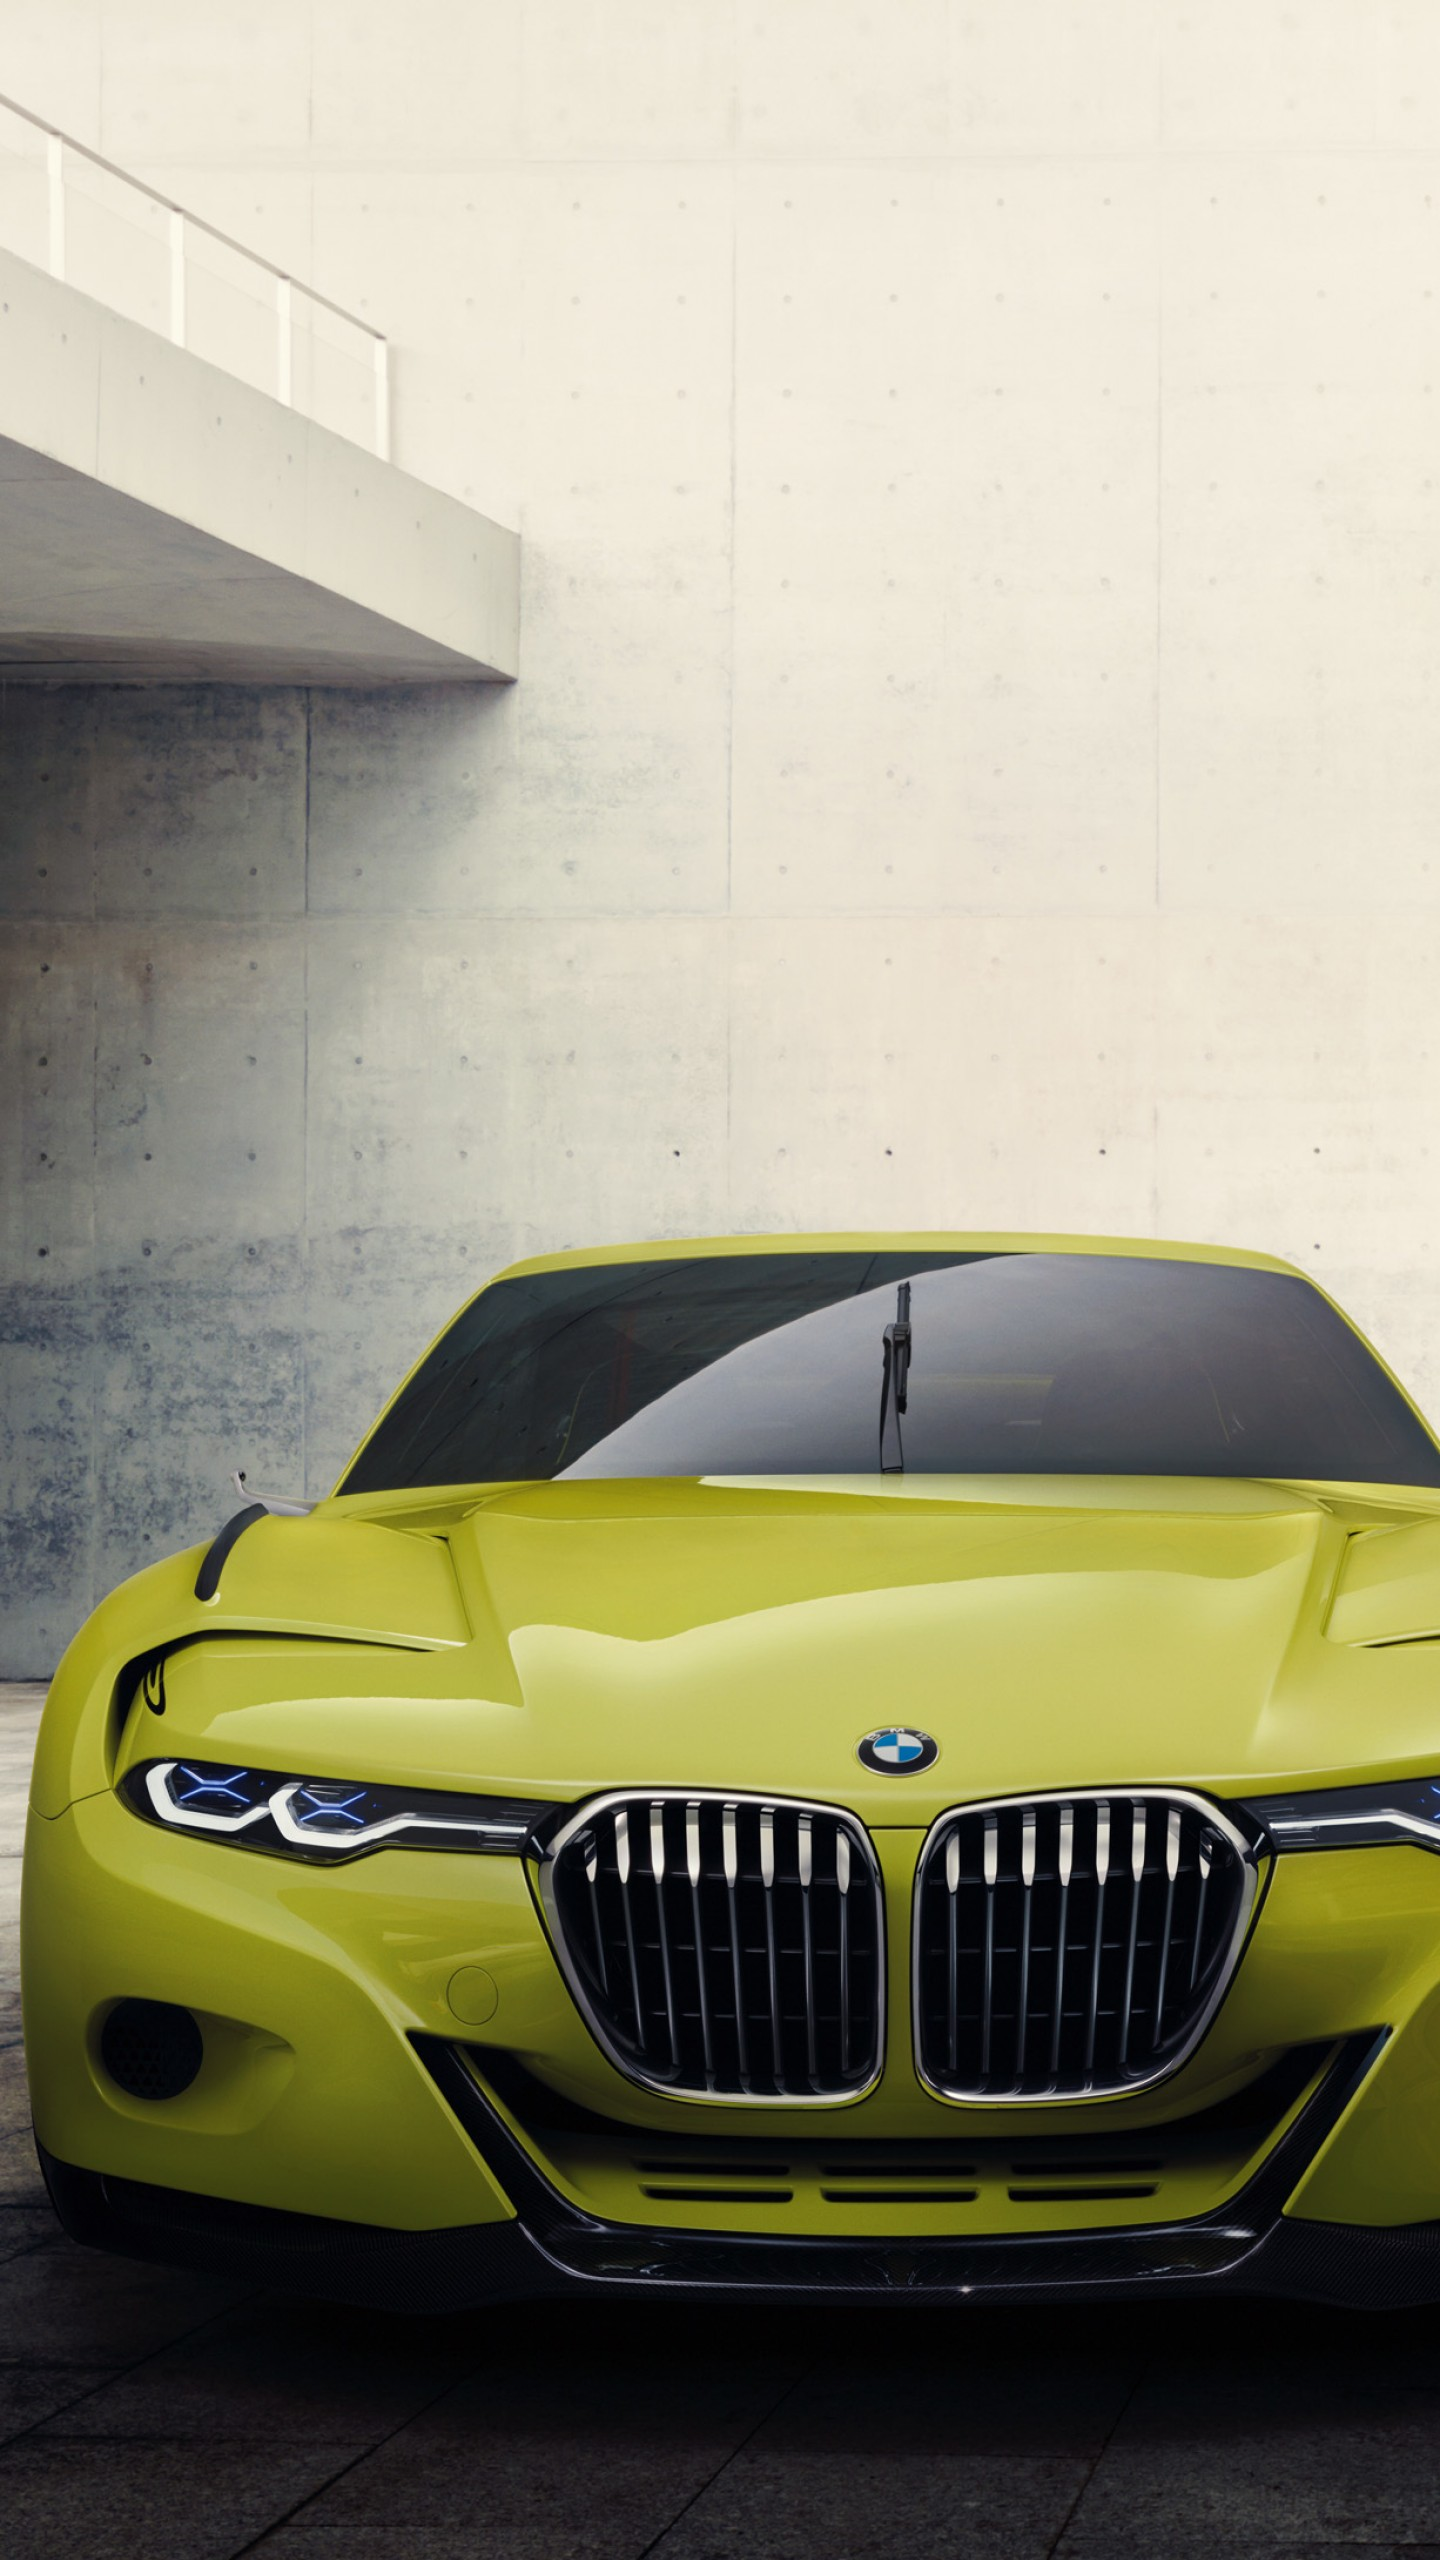 Bmw Csl X Yellow Sports Car Bmw Xdrive Sdrive